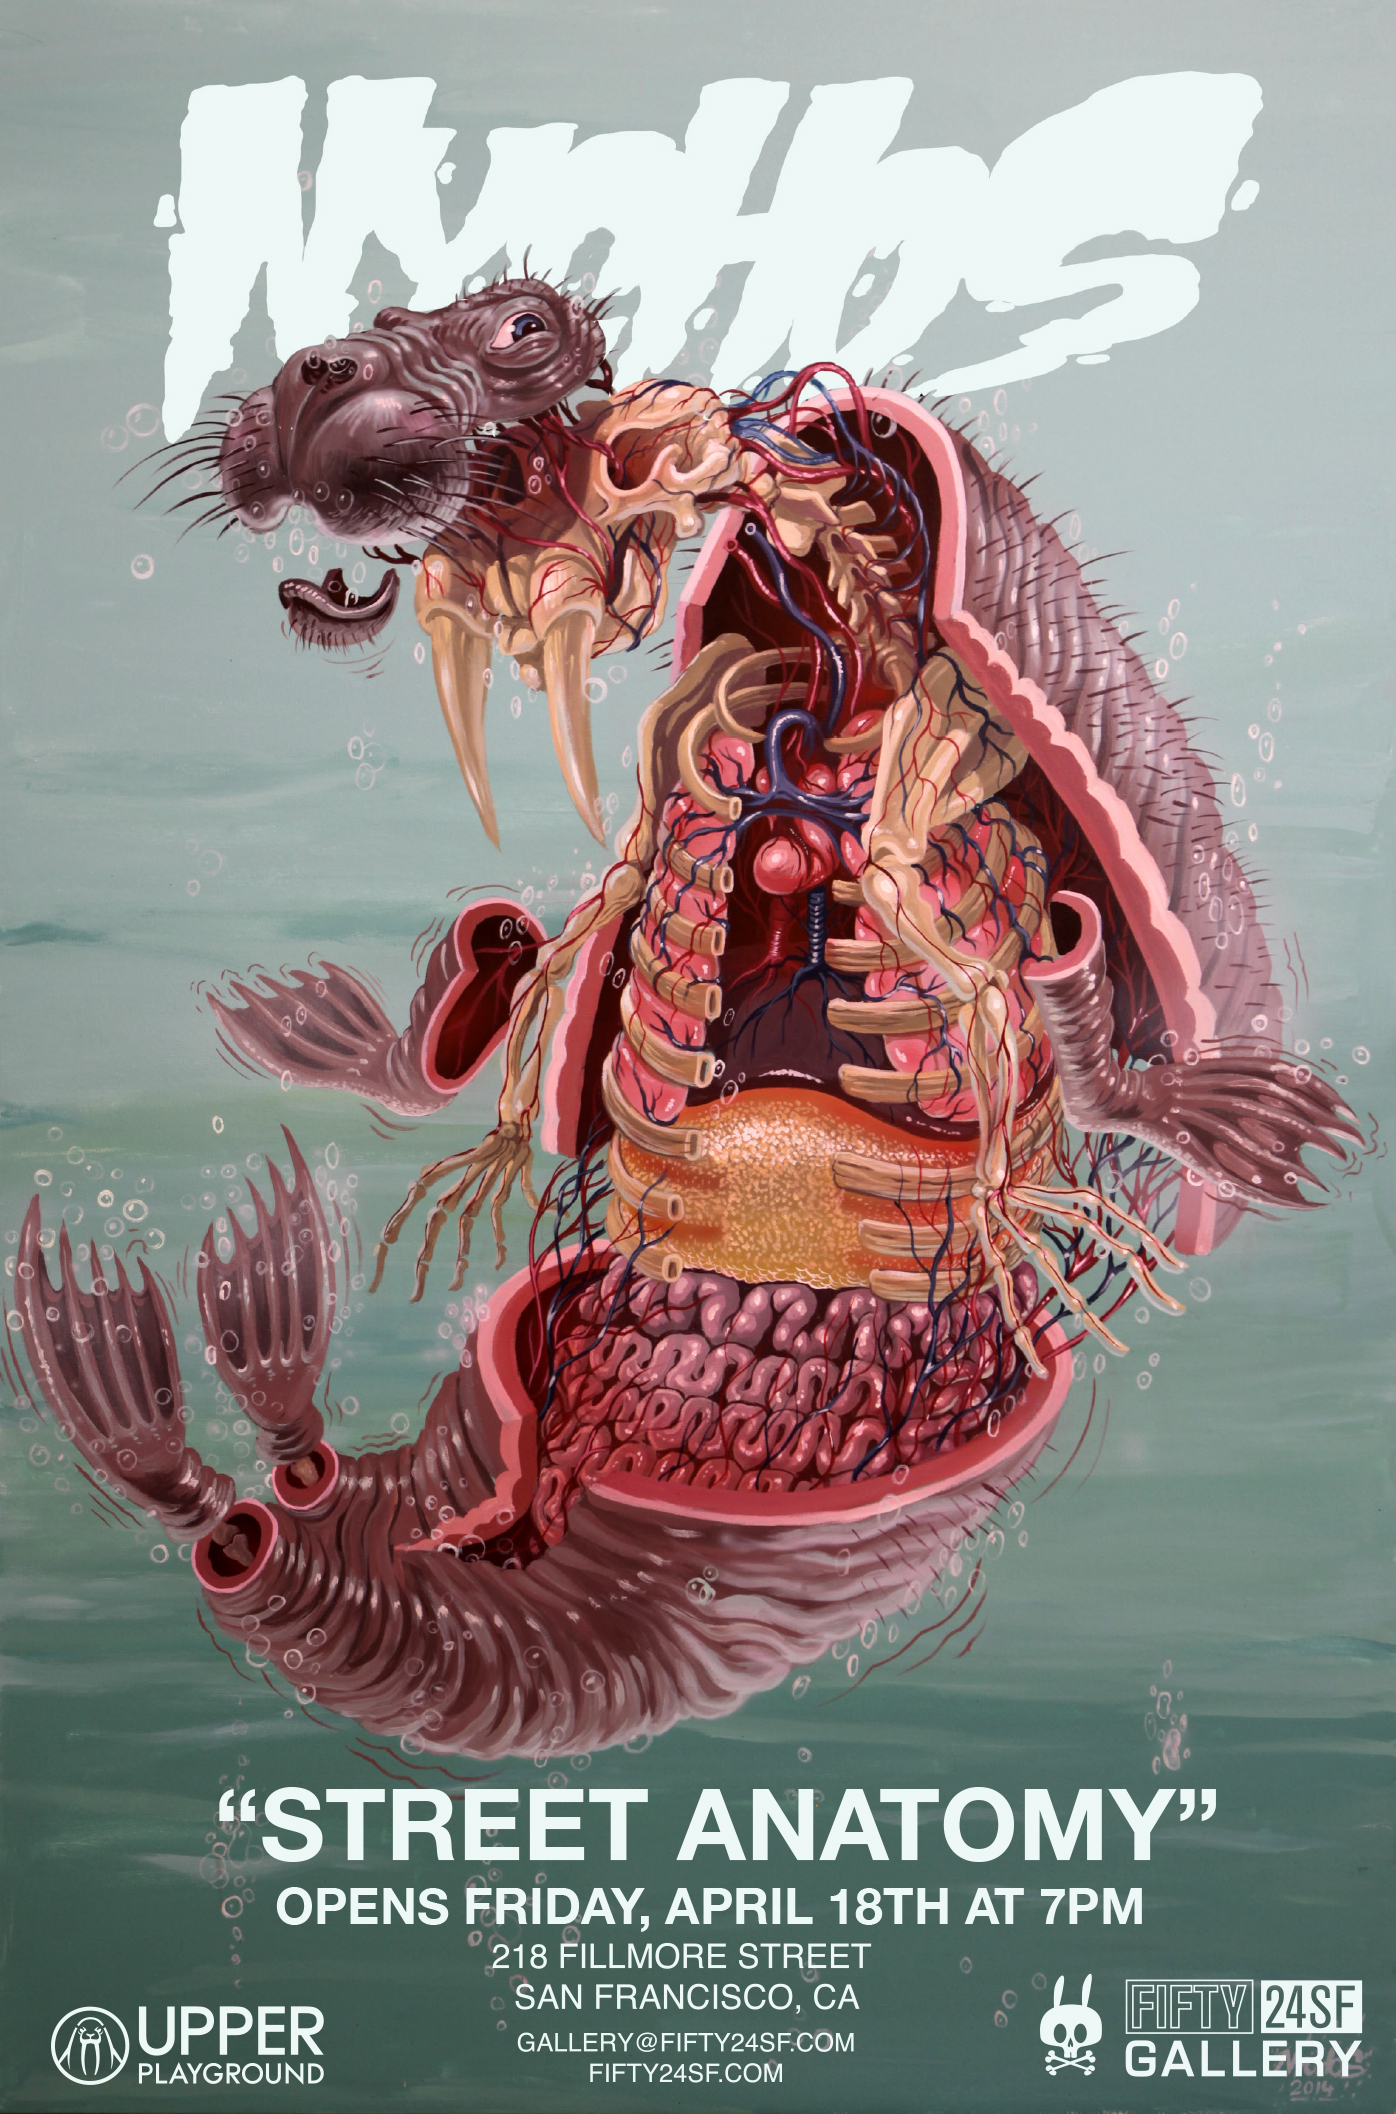 Street Anatomy By Renown Austrian Muralist Nychos At Fifty24sf